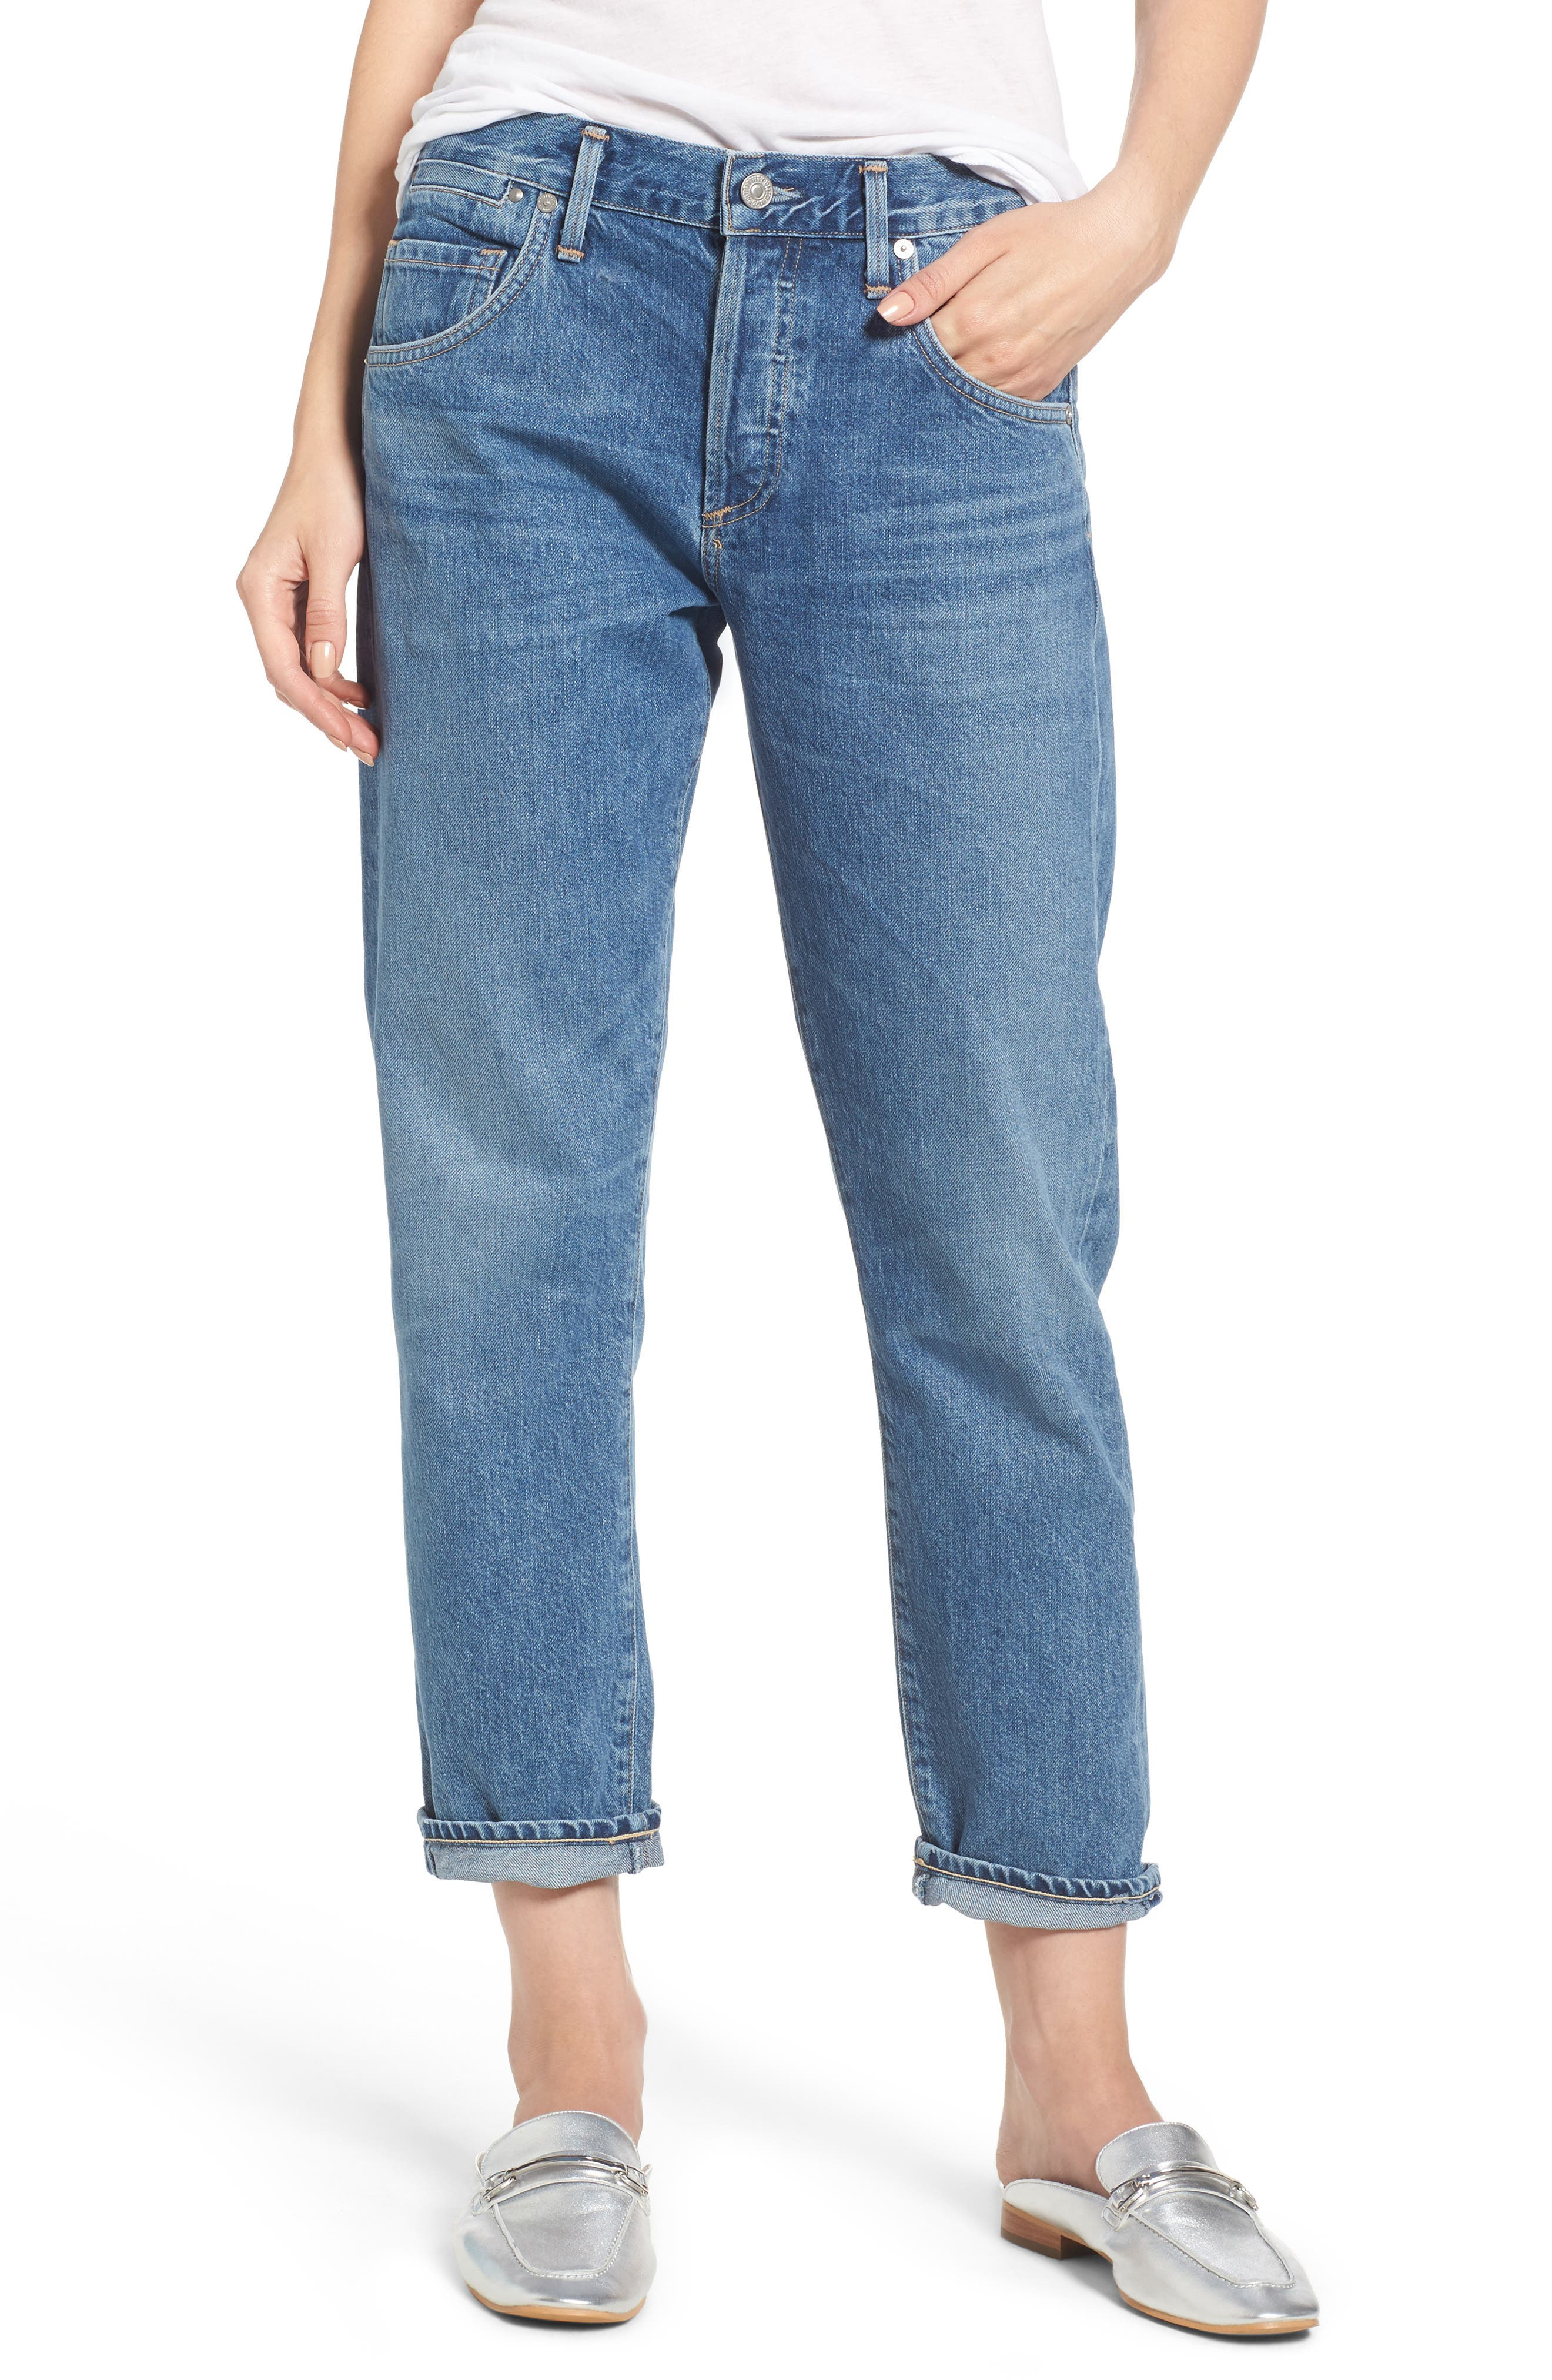 Emerson Slim Boyfriend Jeans,                         Main,                         color, Dream On